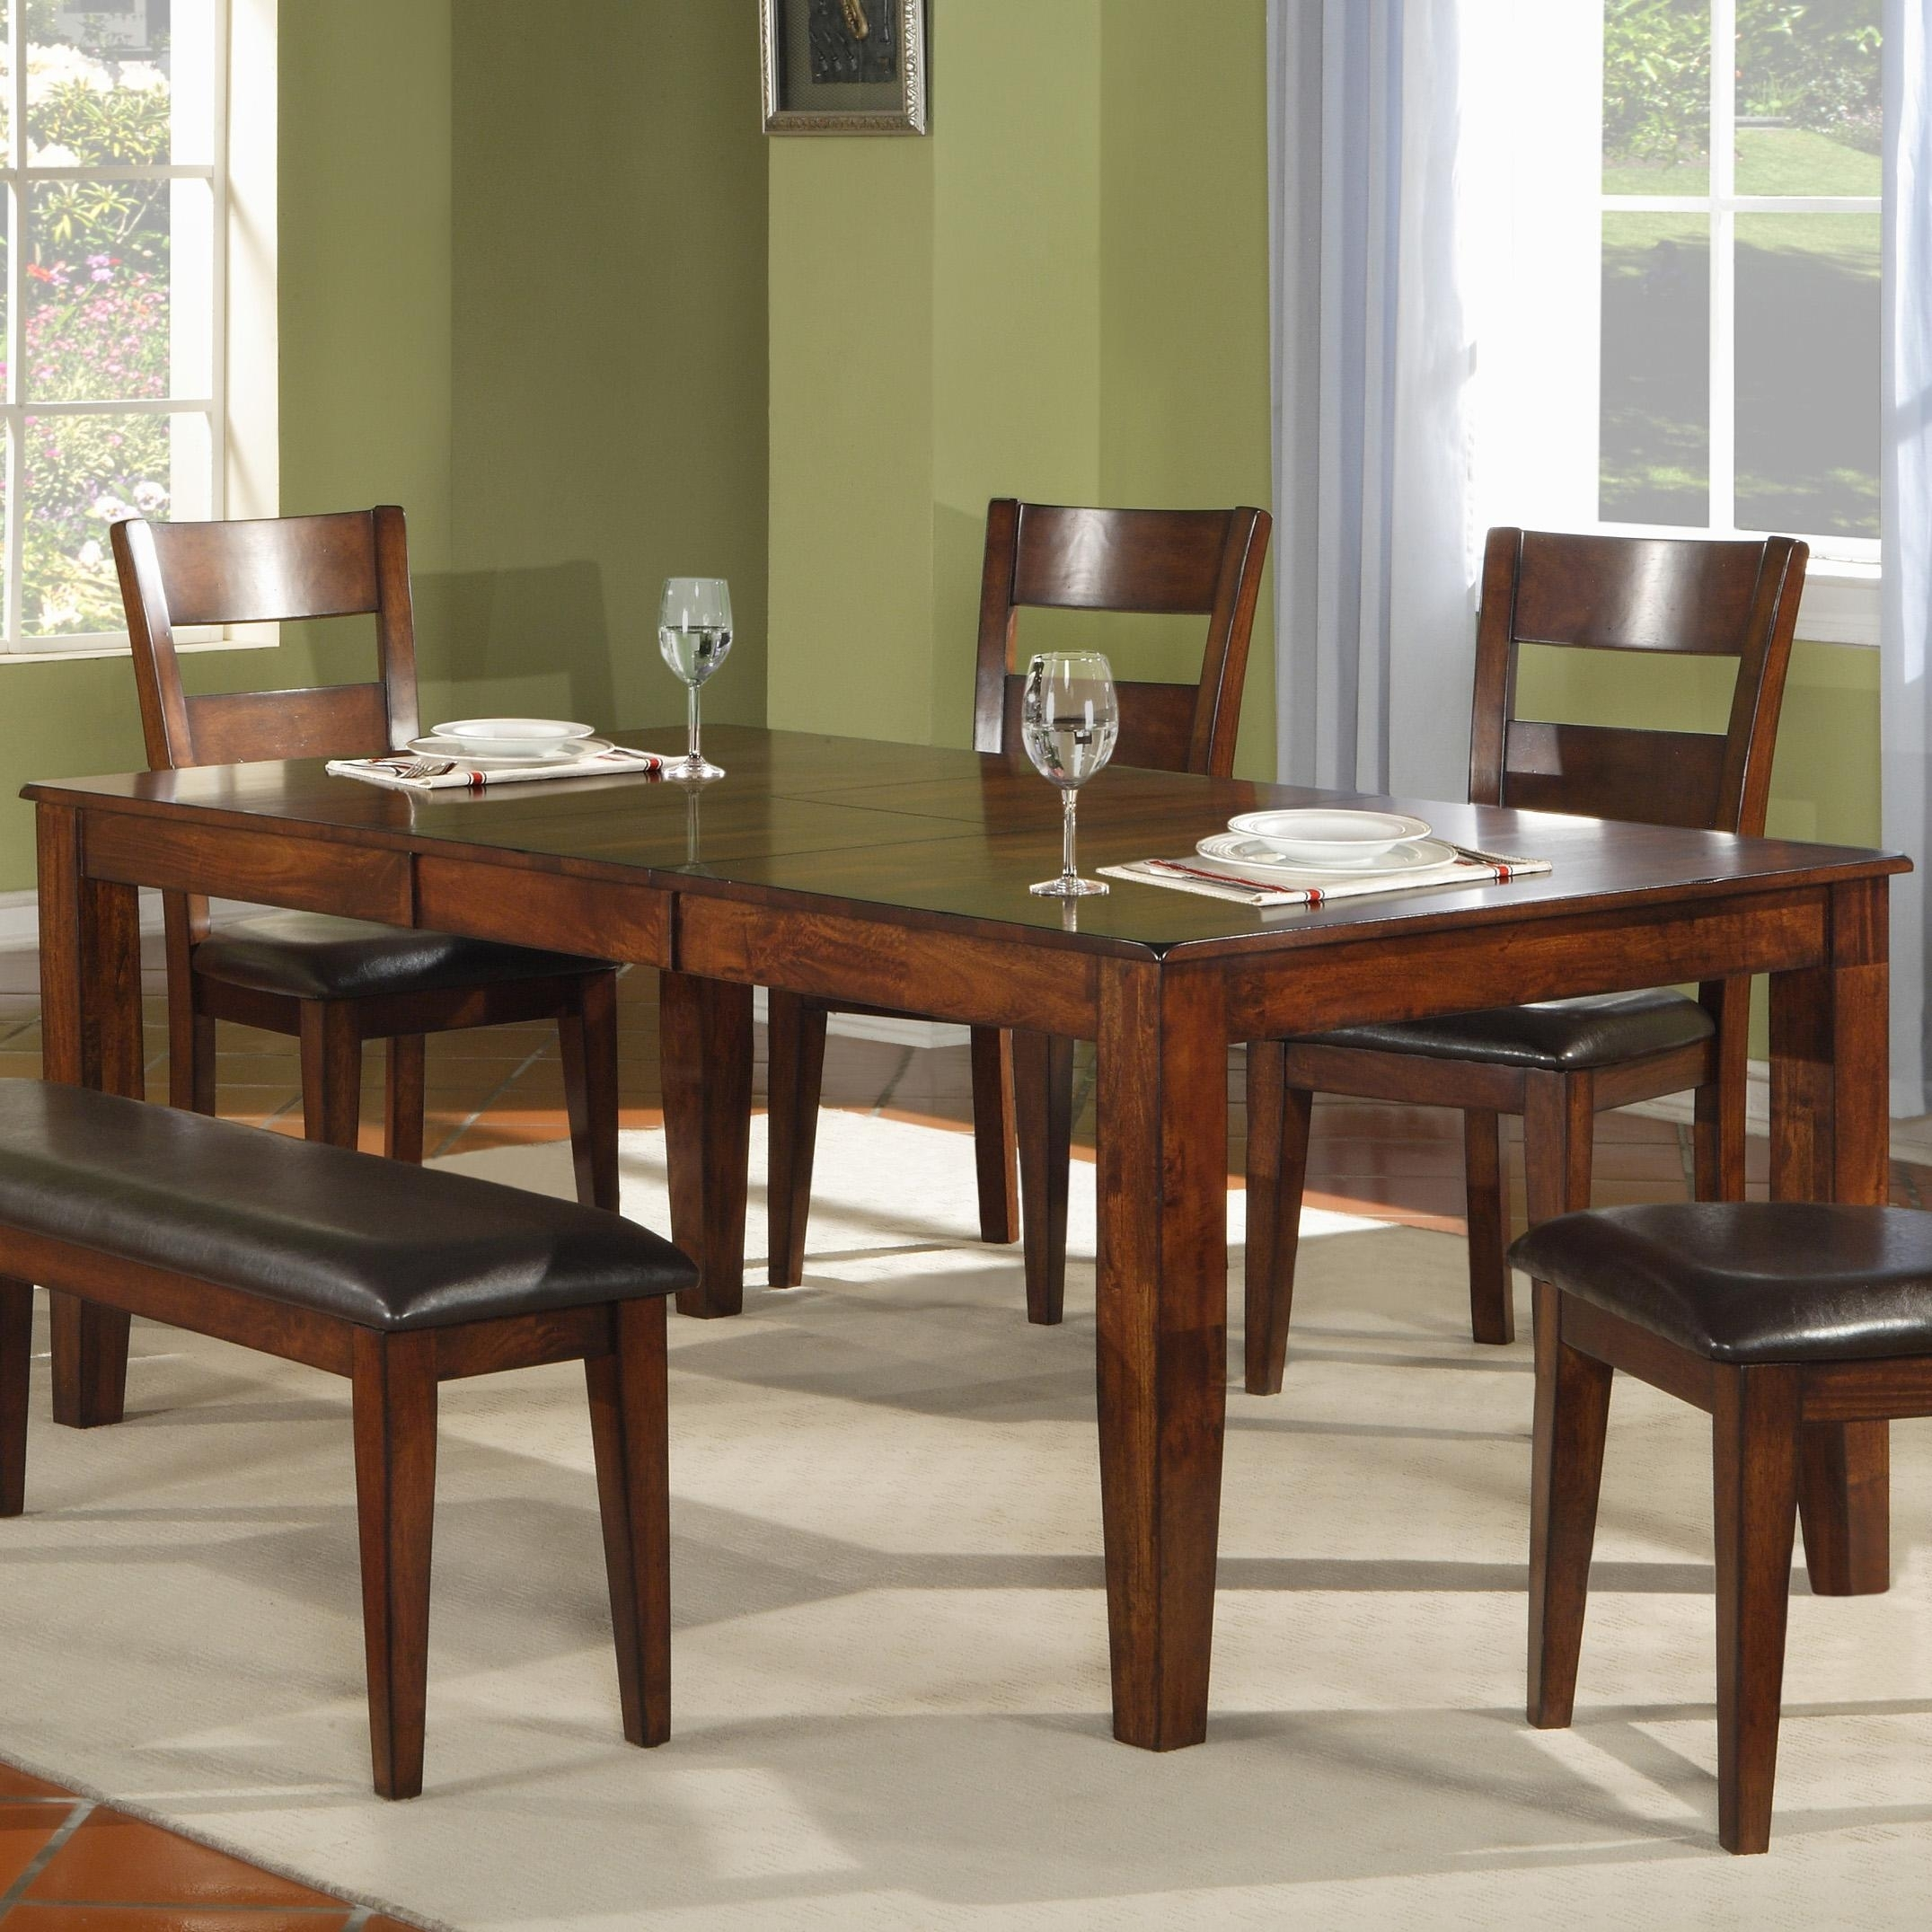 Holland House 1279 Modern Solid Mango Wood Dining Table | Fmg Regarding 2018 Mango Wood/iron Dining Tables (Image 6 of 20)